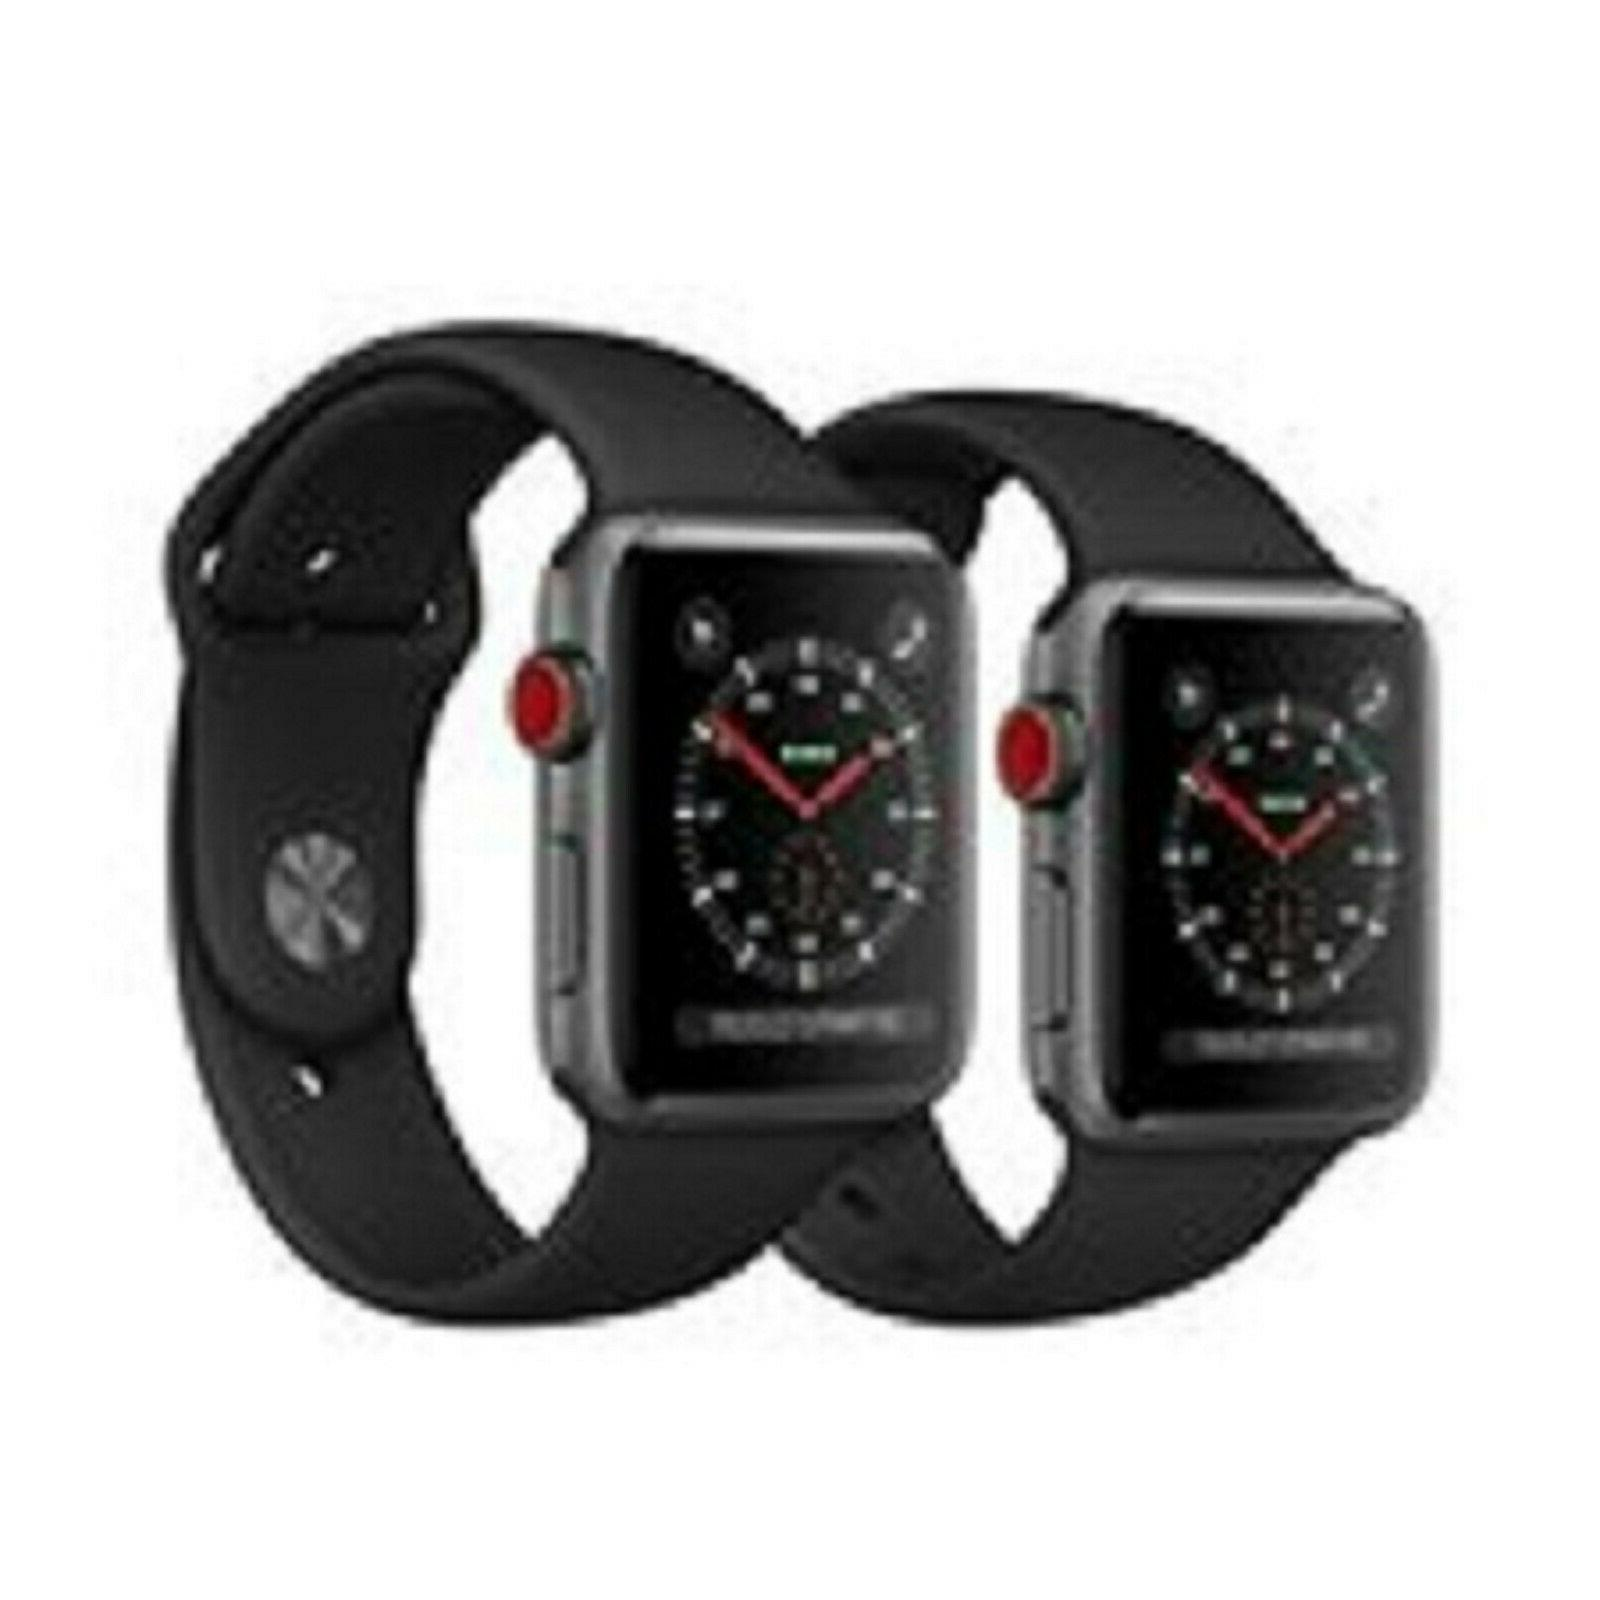 Apple Watch 42mm LTE Band